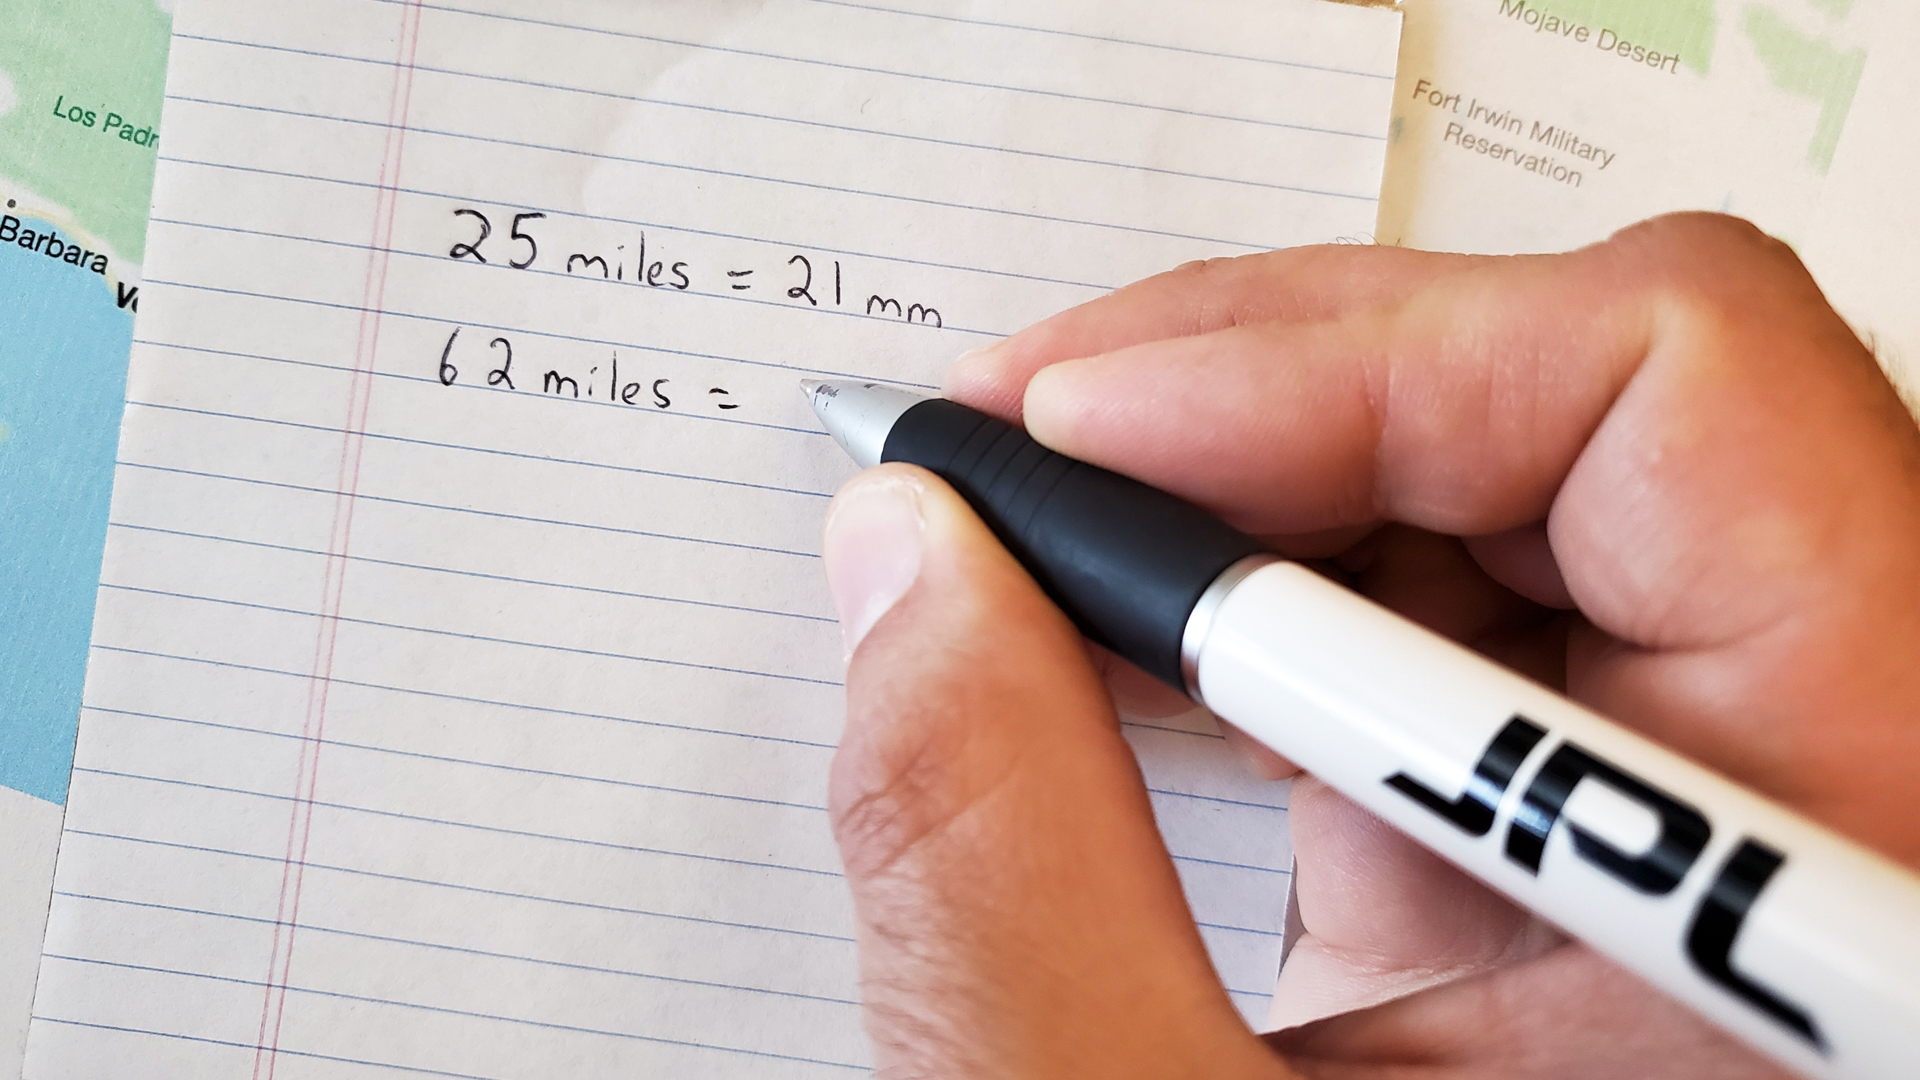 A person writes out their calculation on a piece of paper